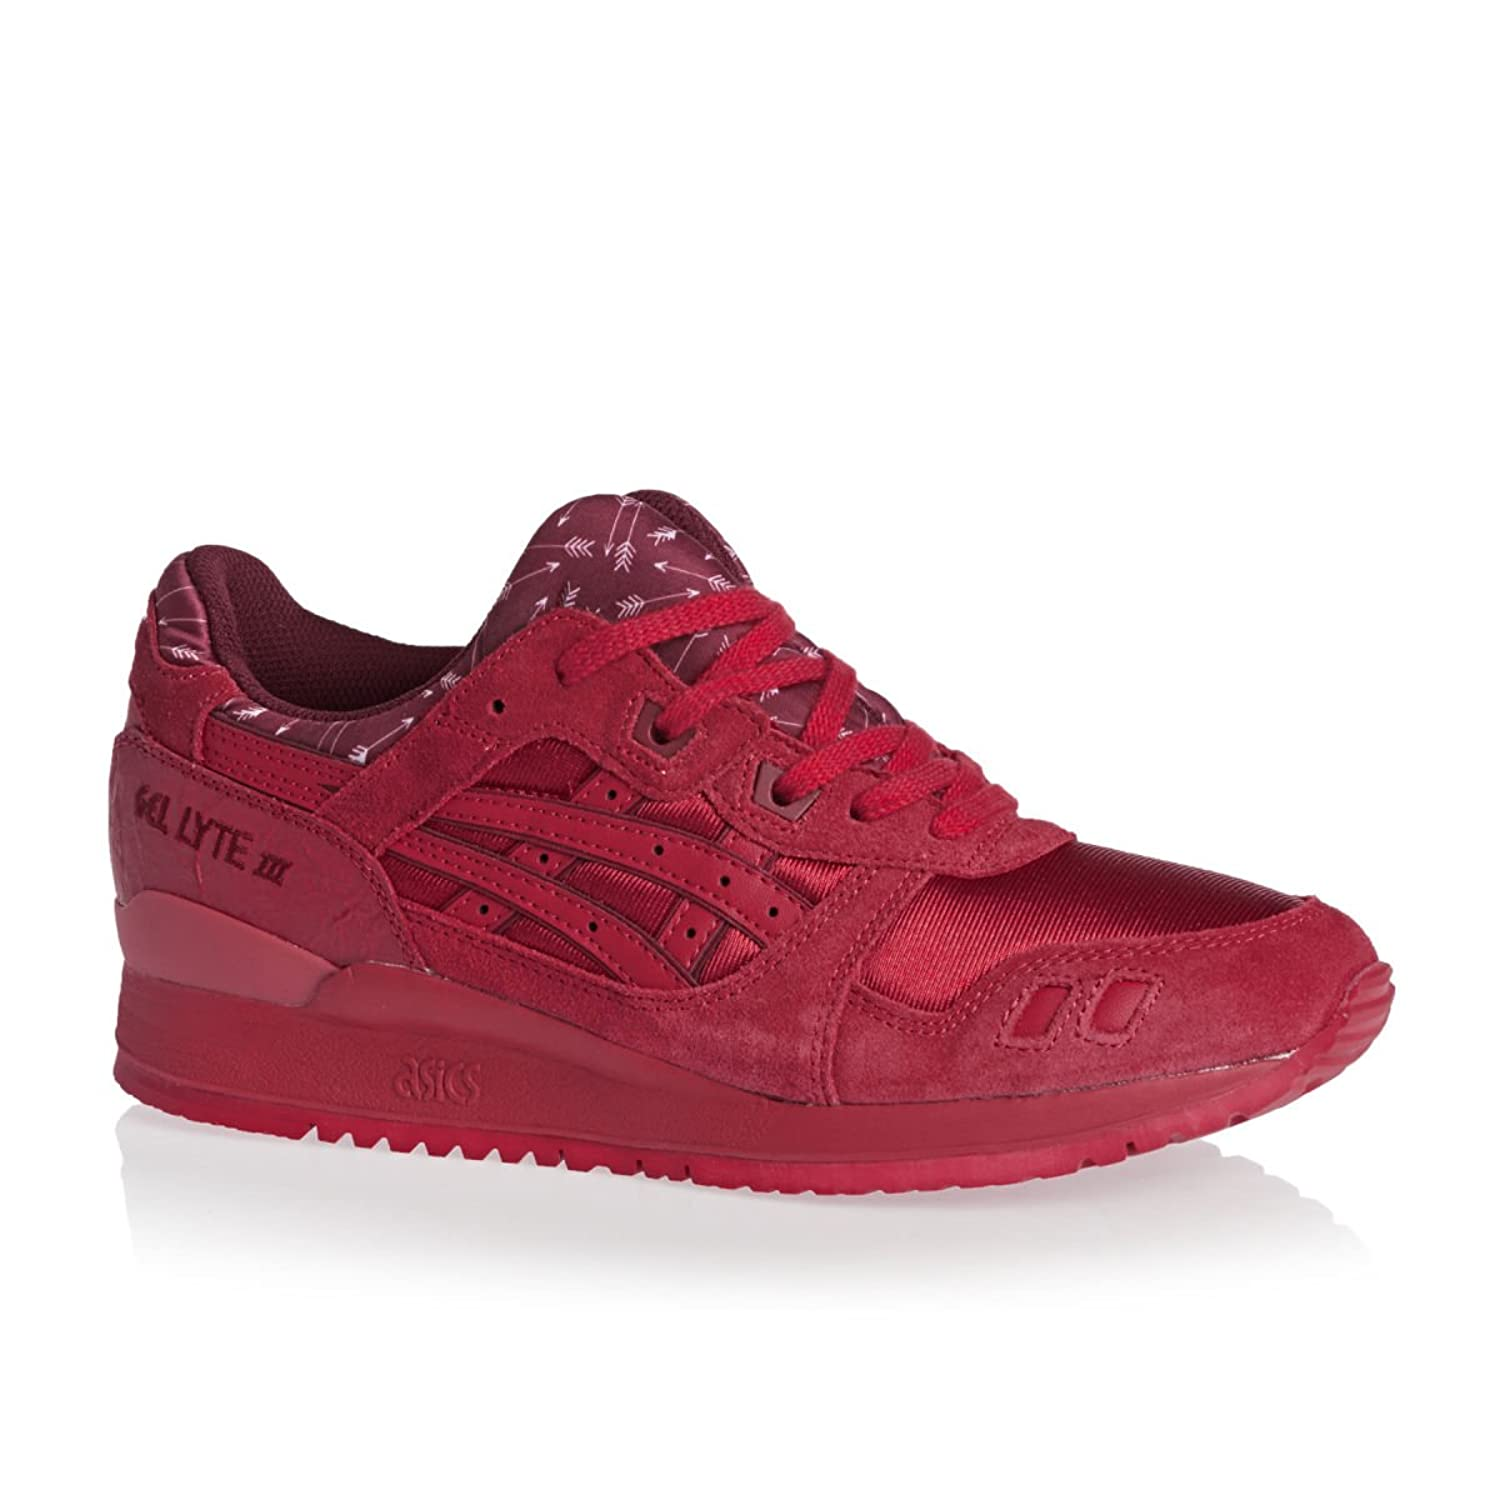 Red Asics Gel Lyte Iii